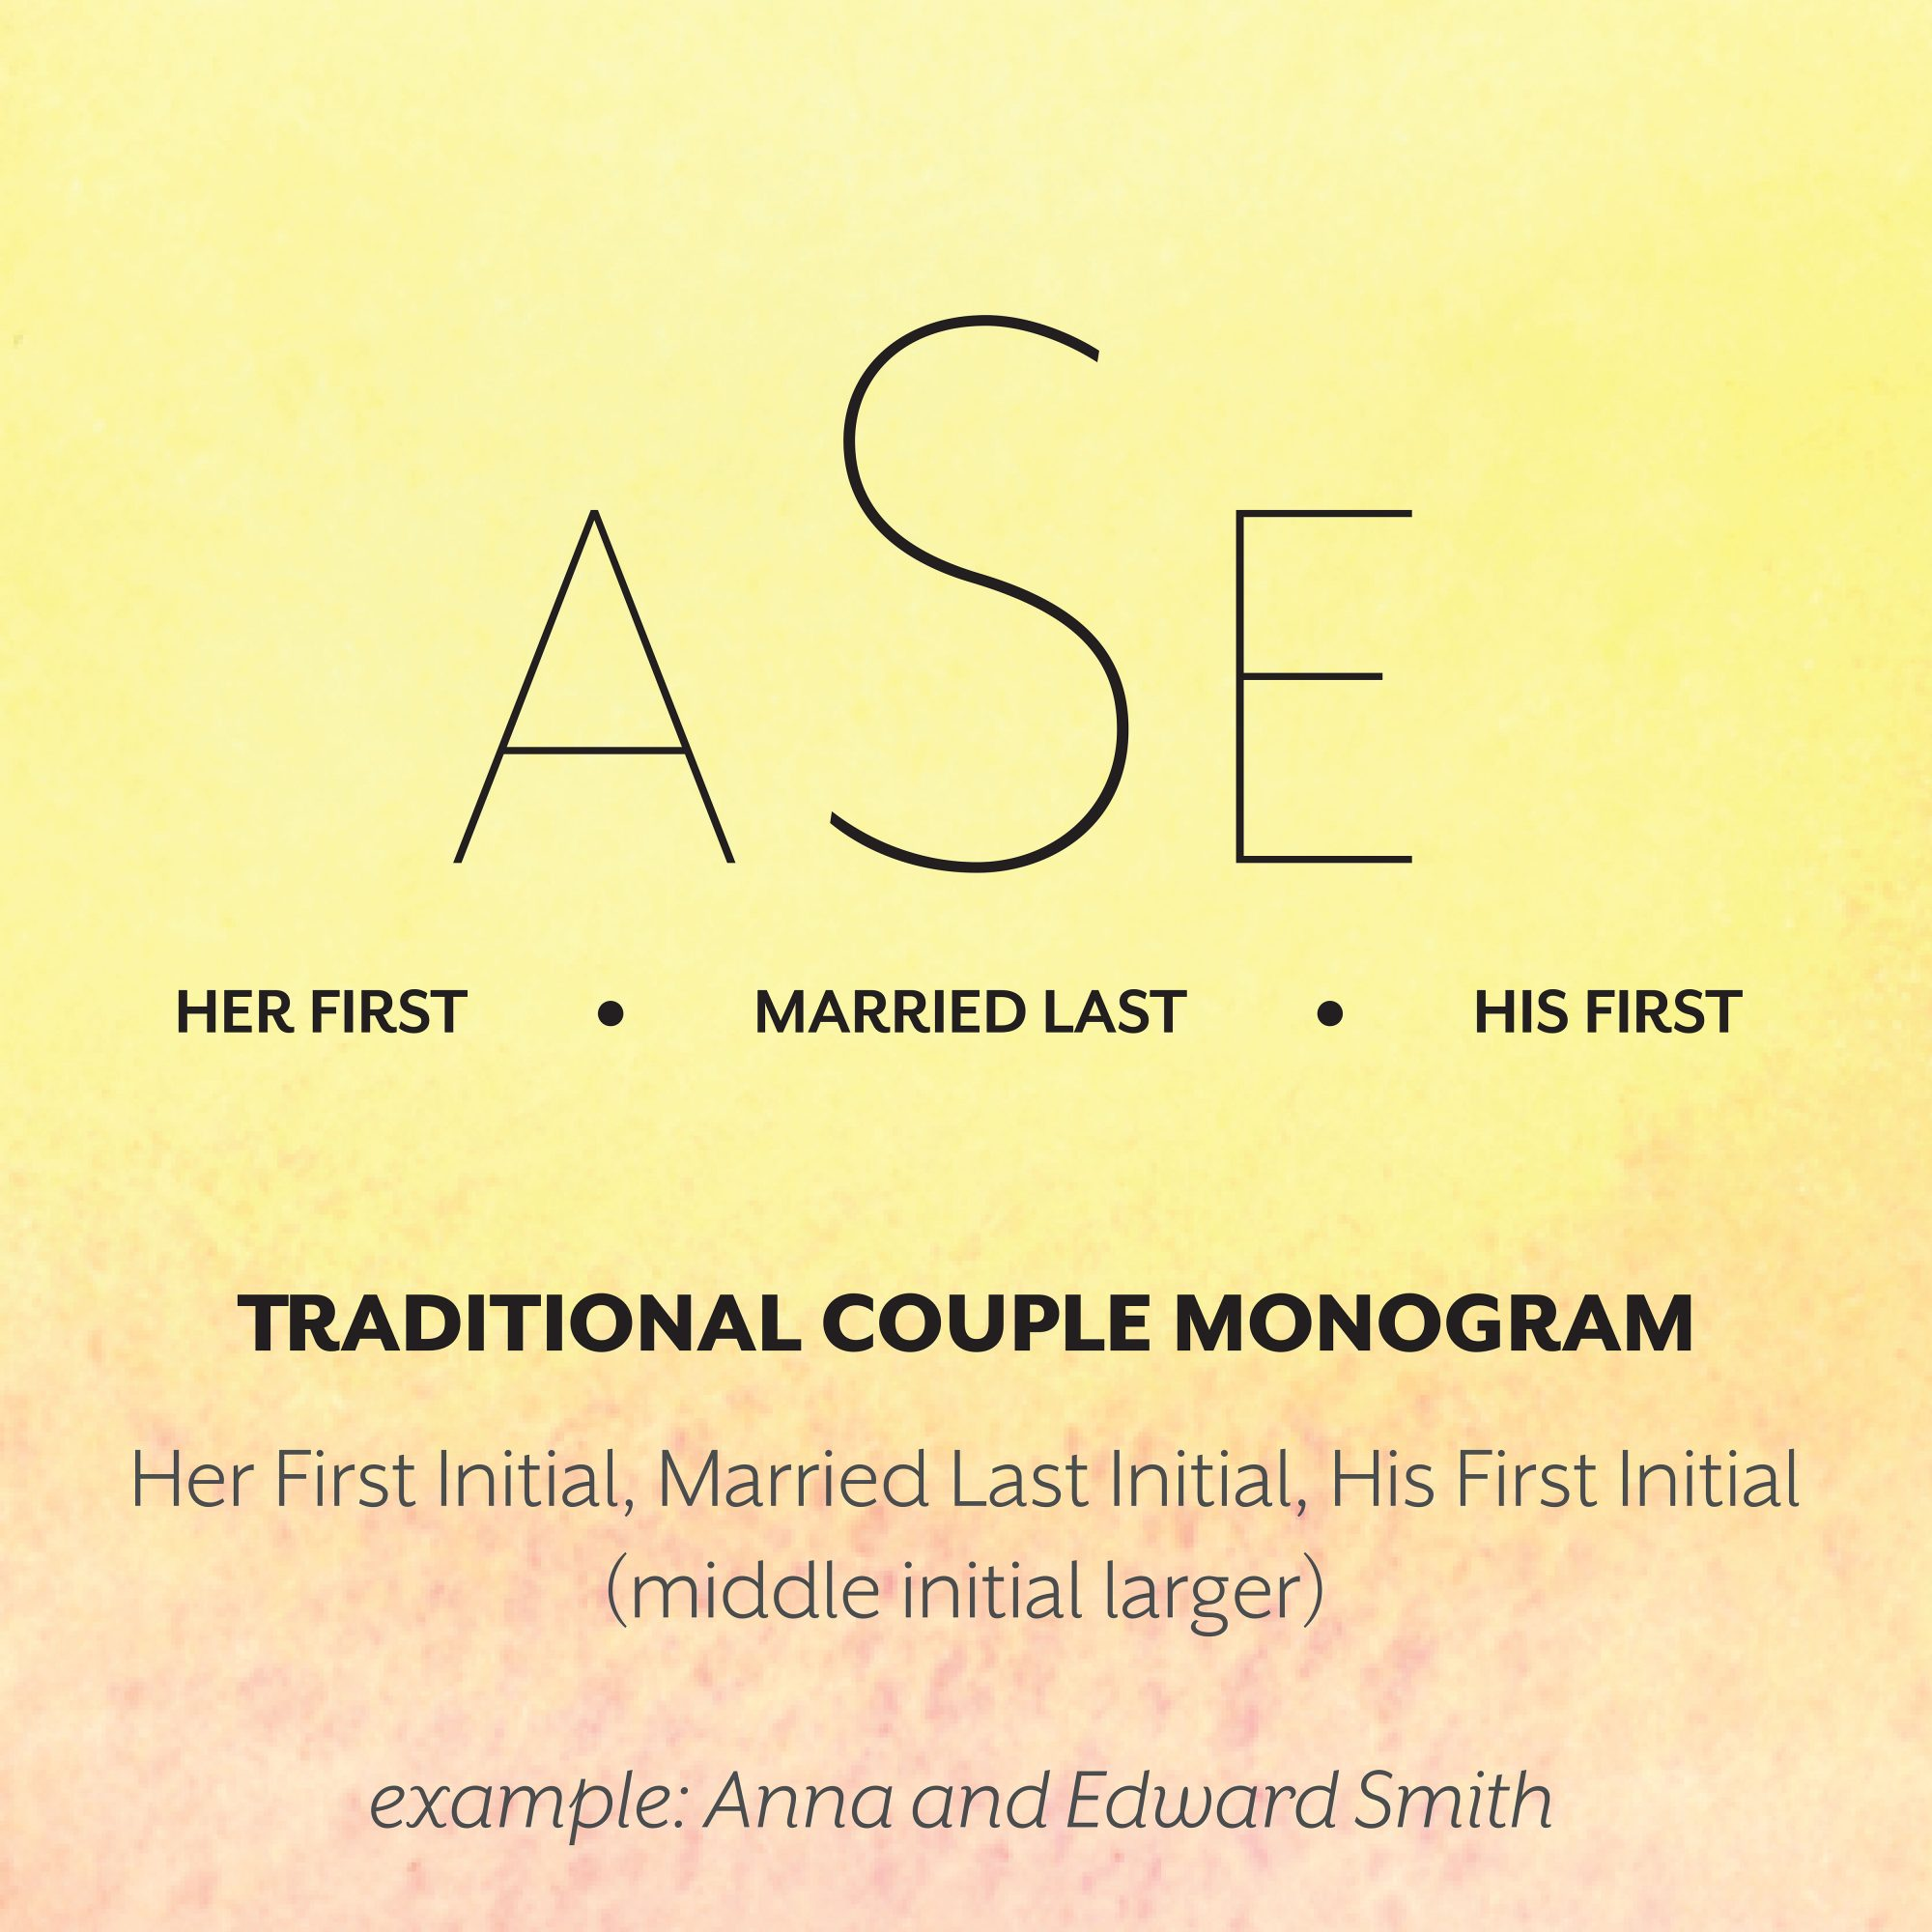 Traditional Couple Monogram